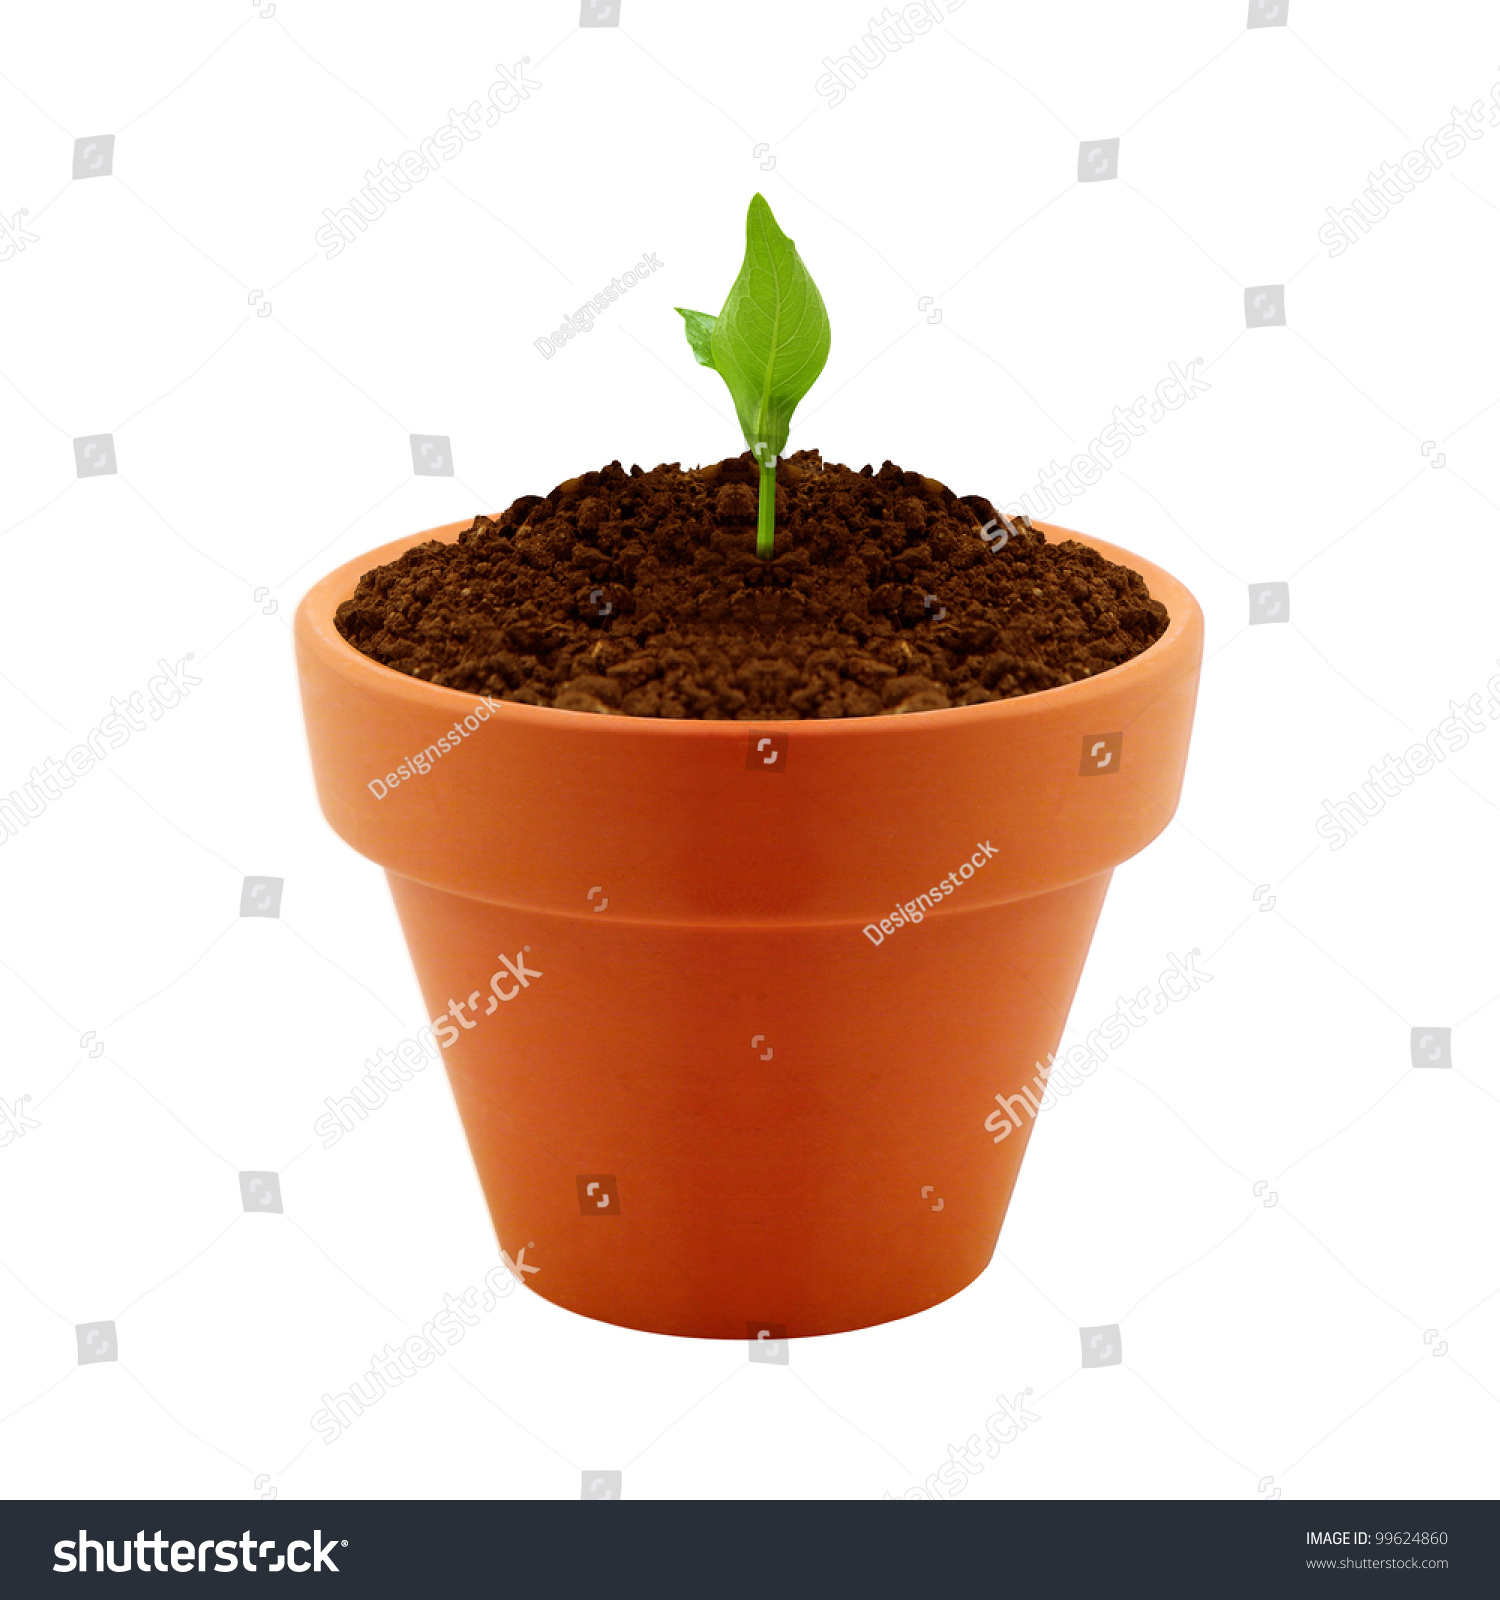 Small Plant Growing In Clay Pot Stock Photo 99624860